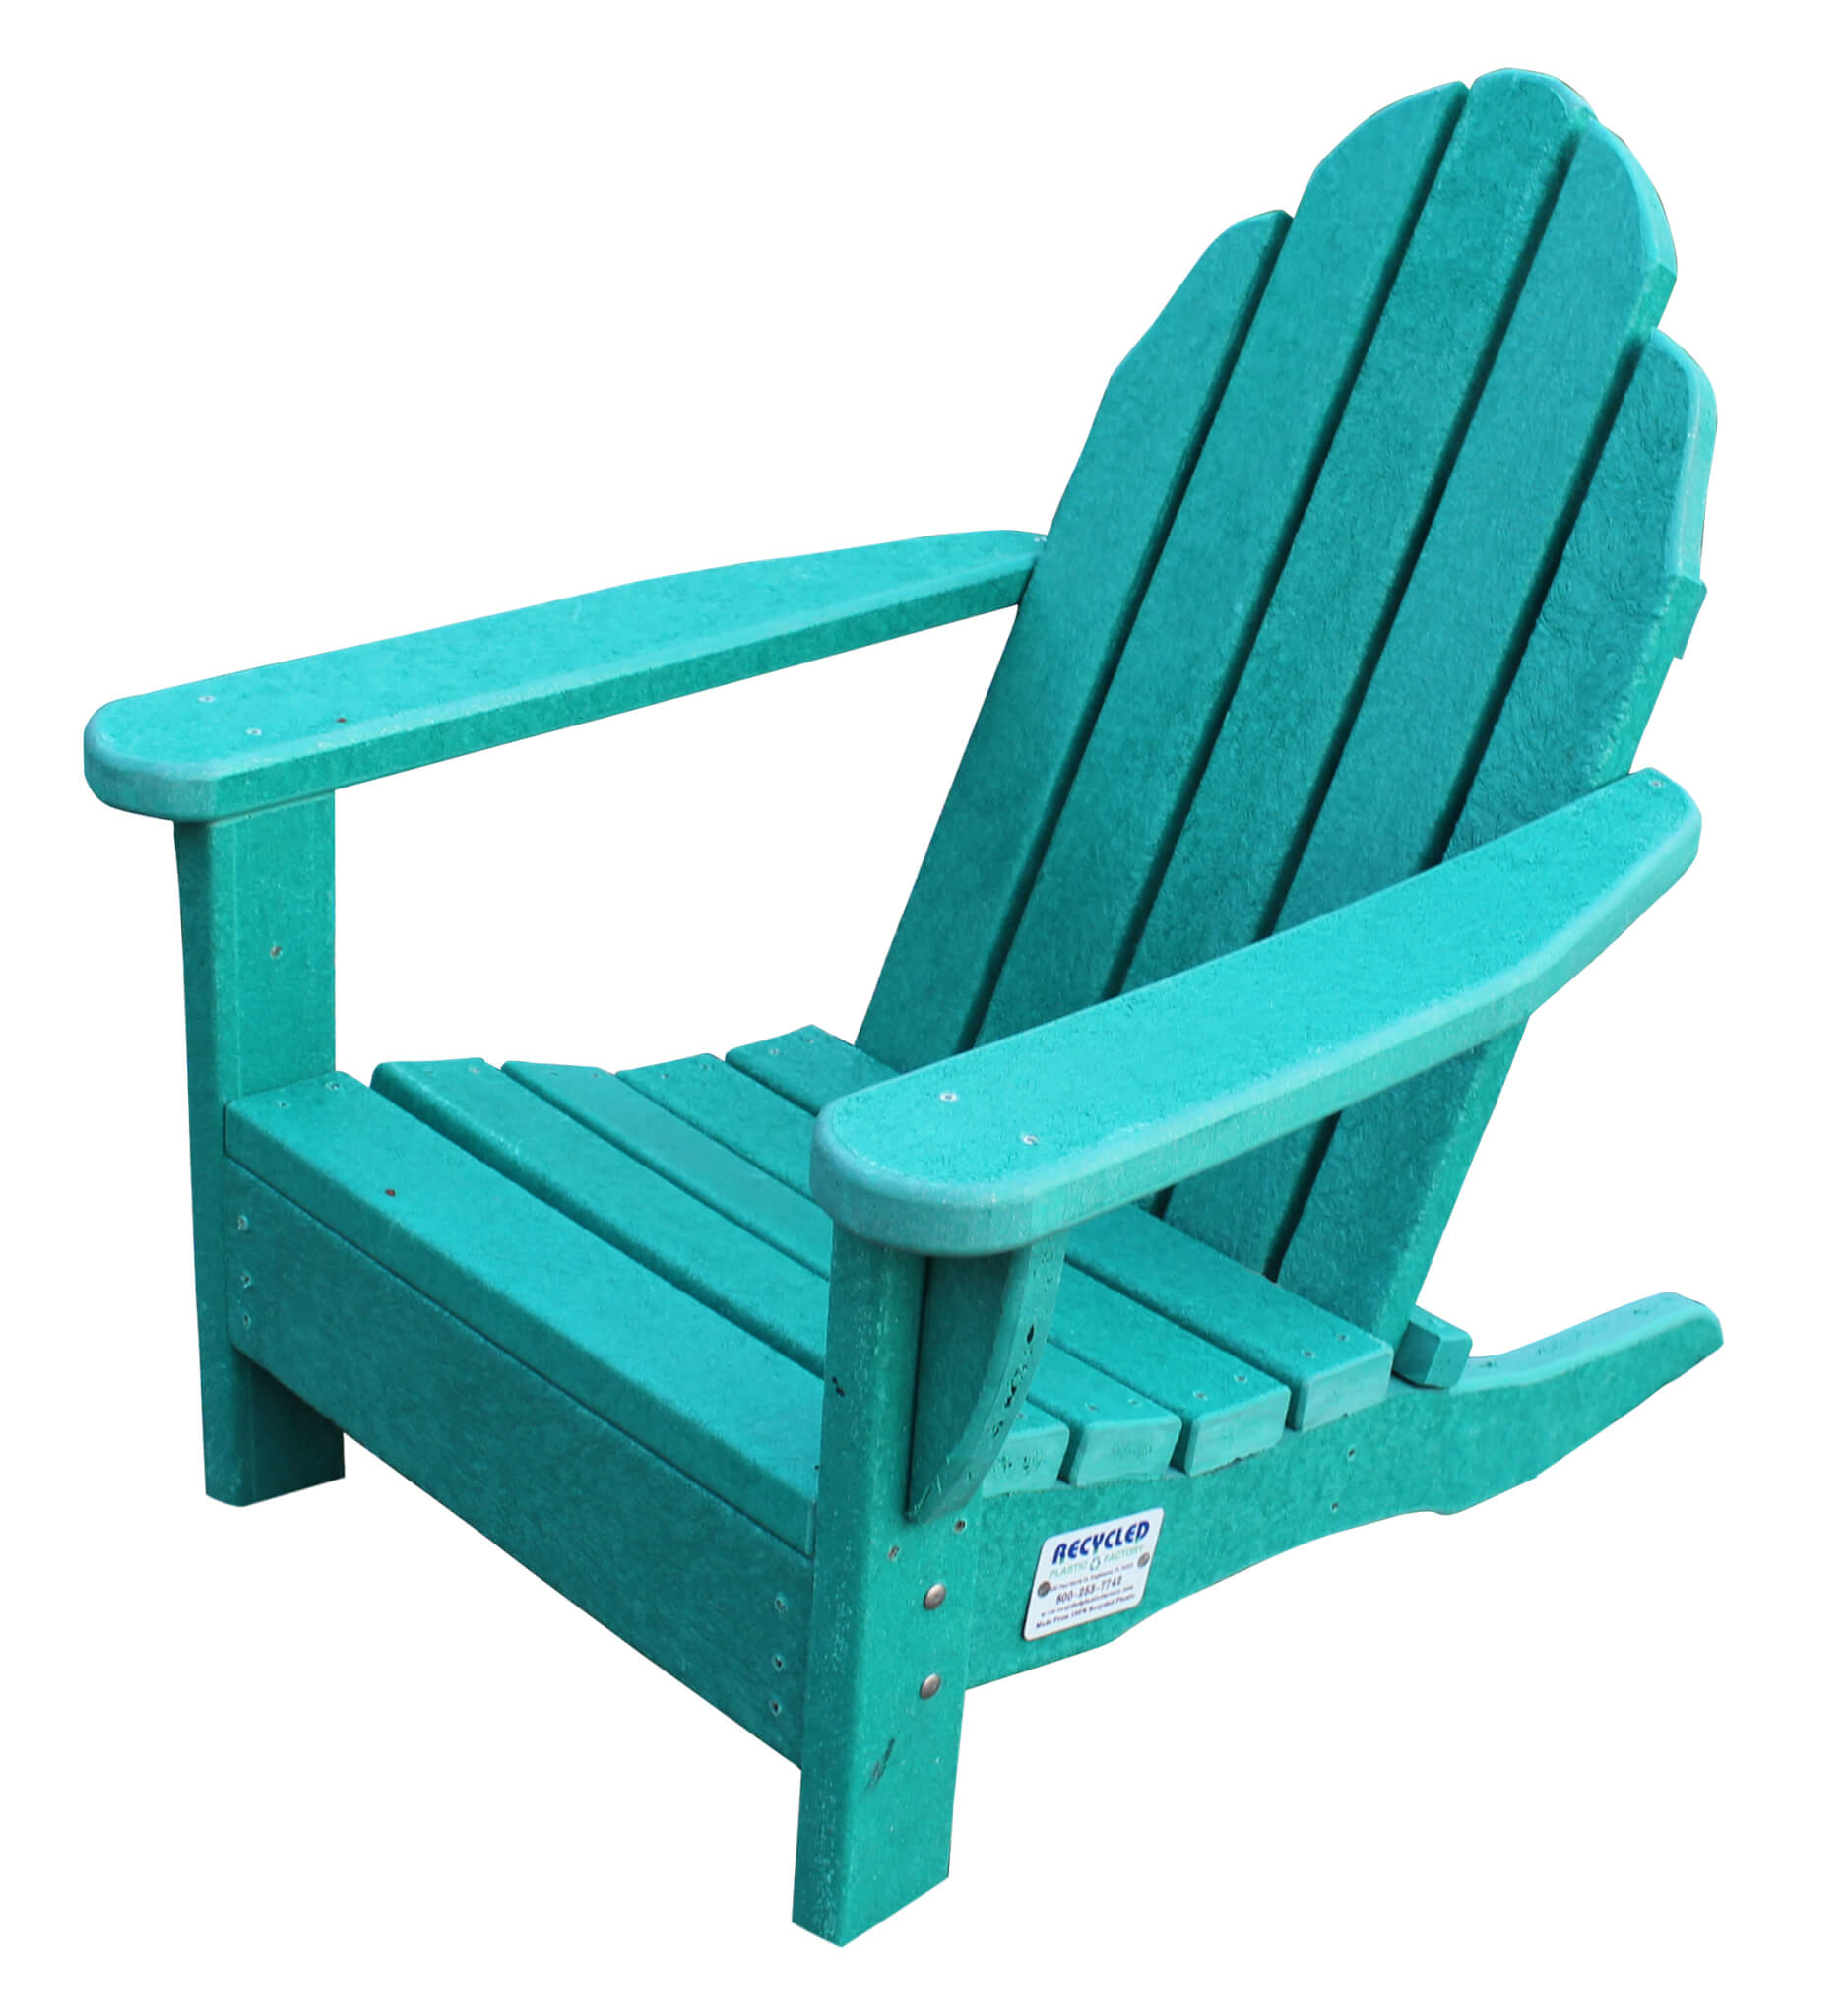 adirondack chairs recycled materials costco office outdoor patio furniture  insteading